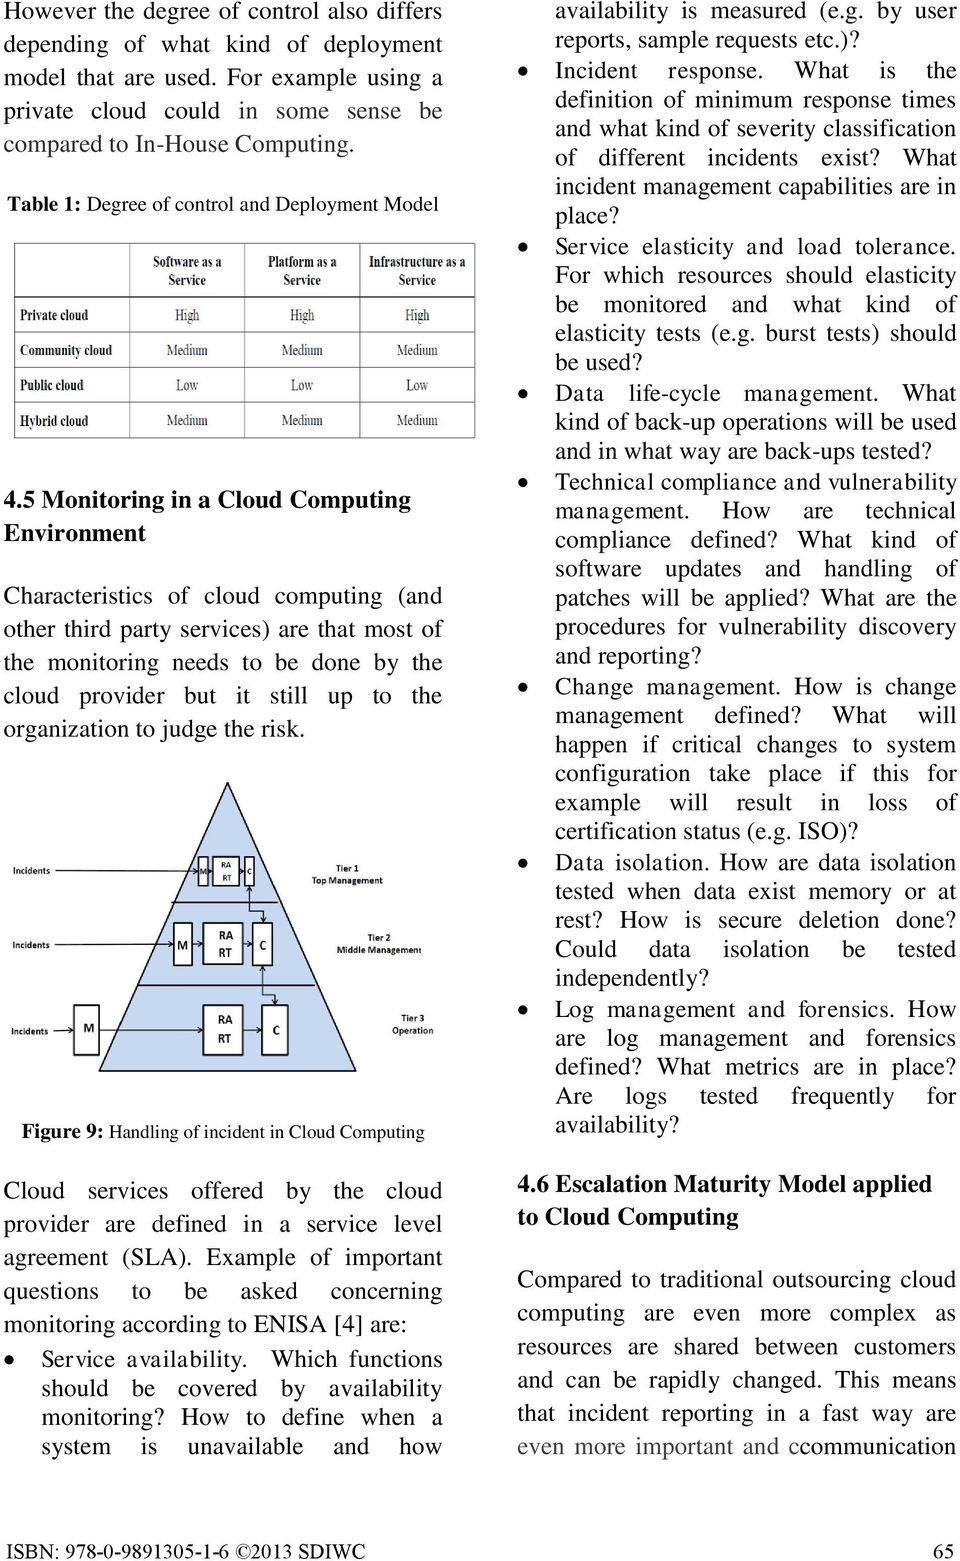 5 Monitoring in a Cloud Computing Environment Characteristics of cloud computing (and other third party services) are that most of the monitoring needs to be done by the cloud provider but it still